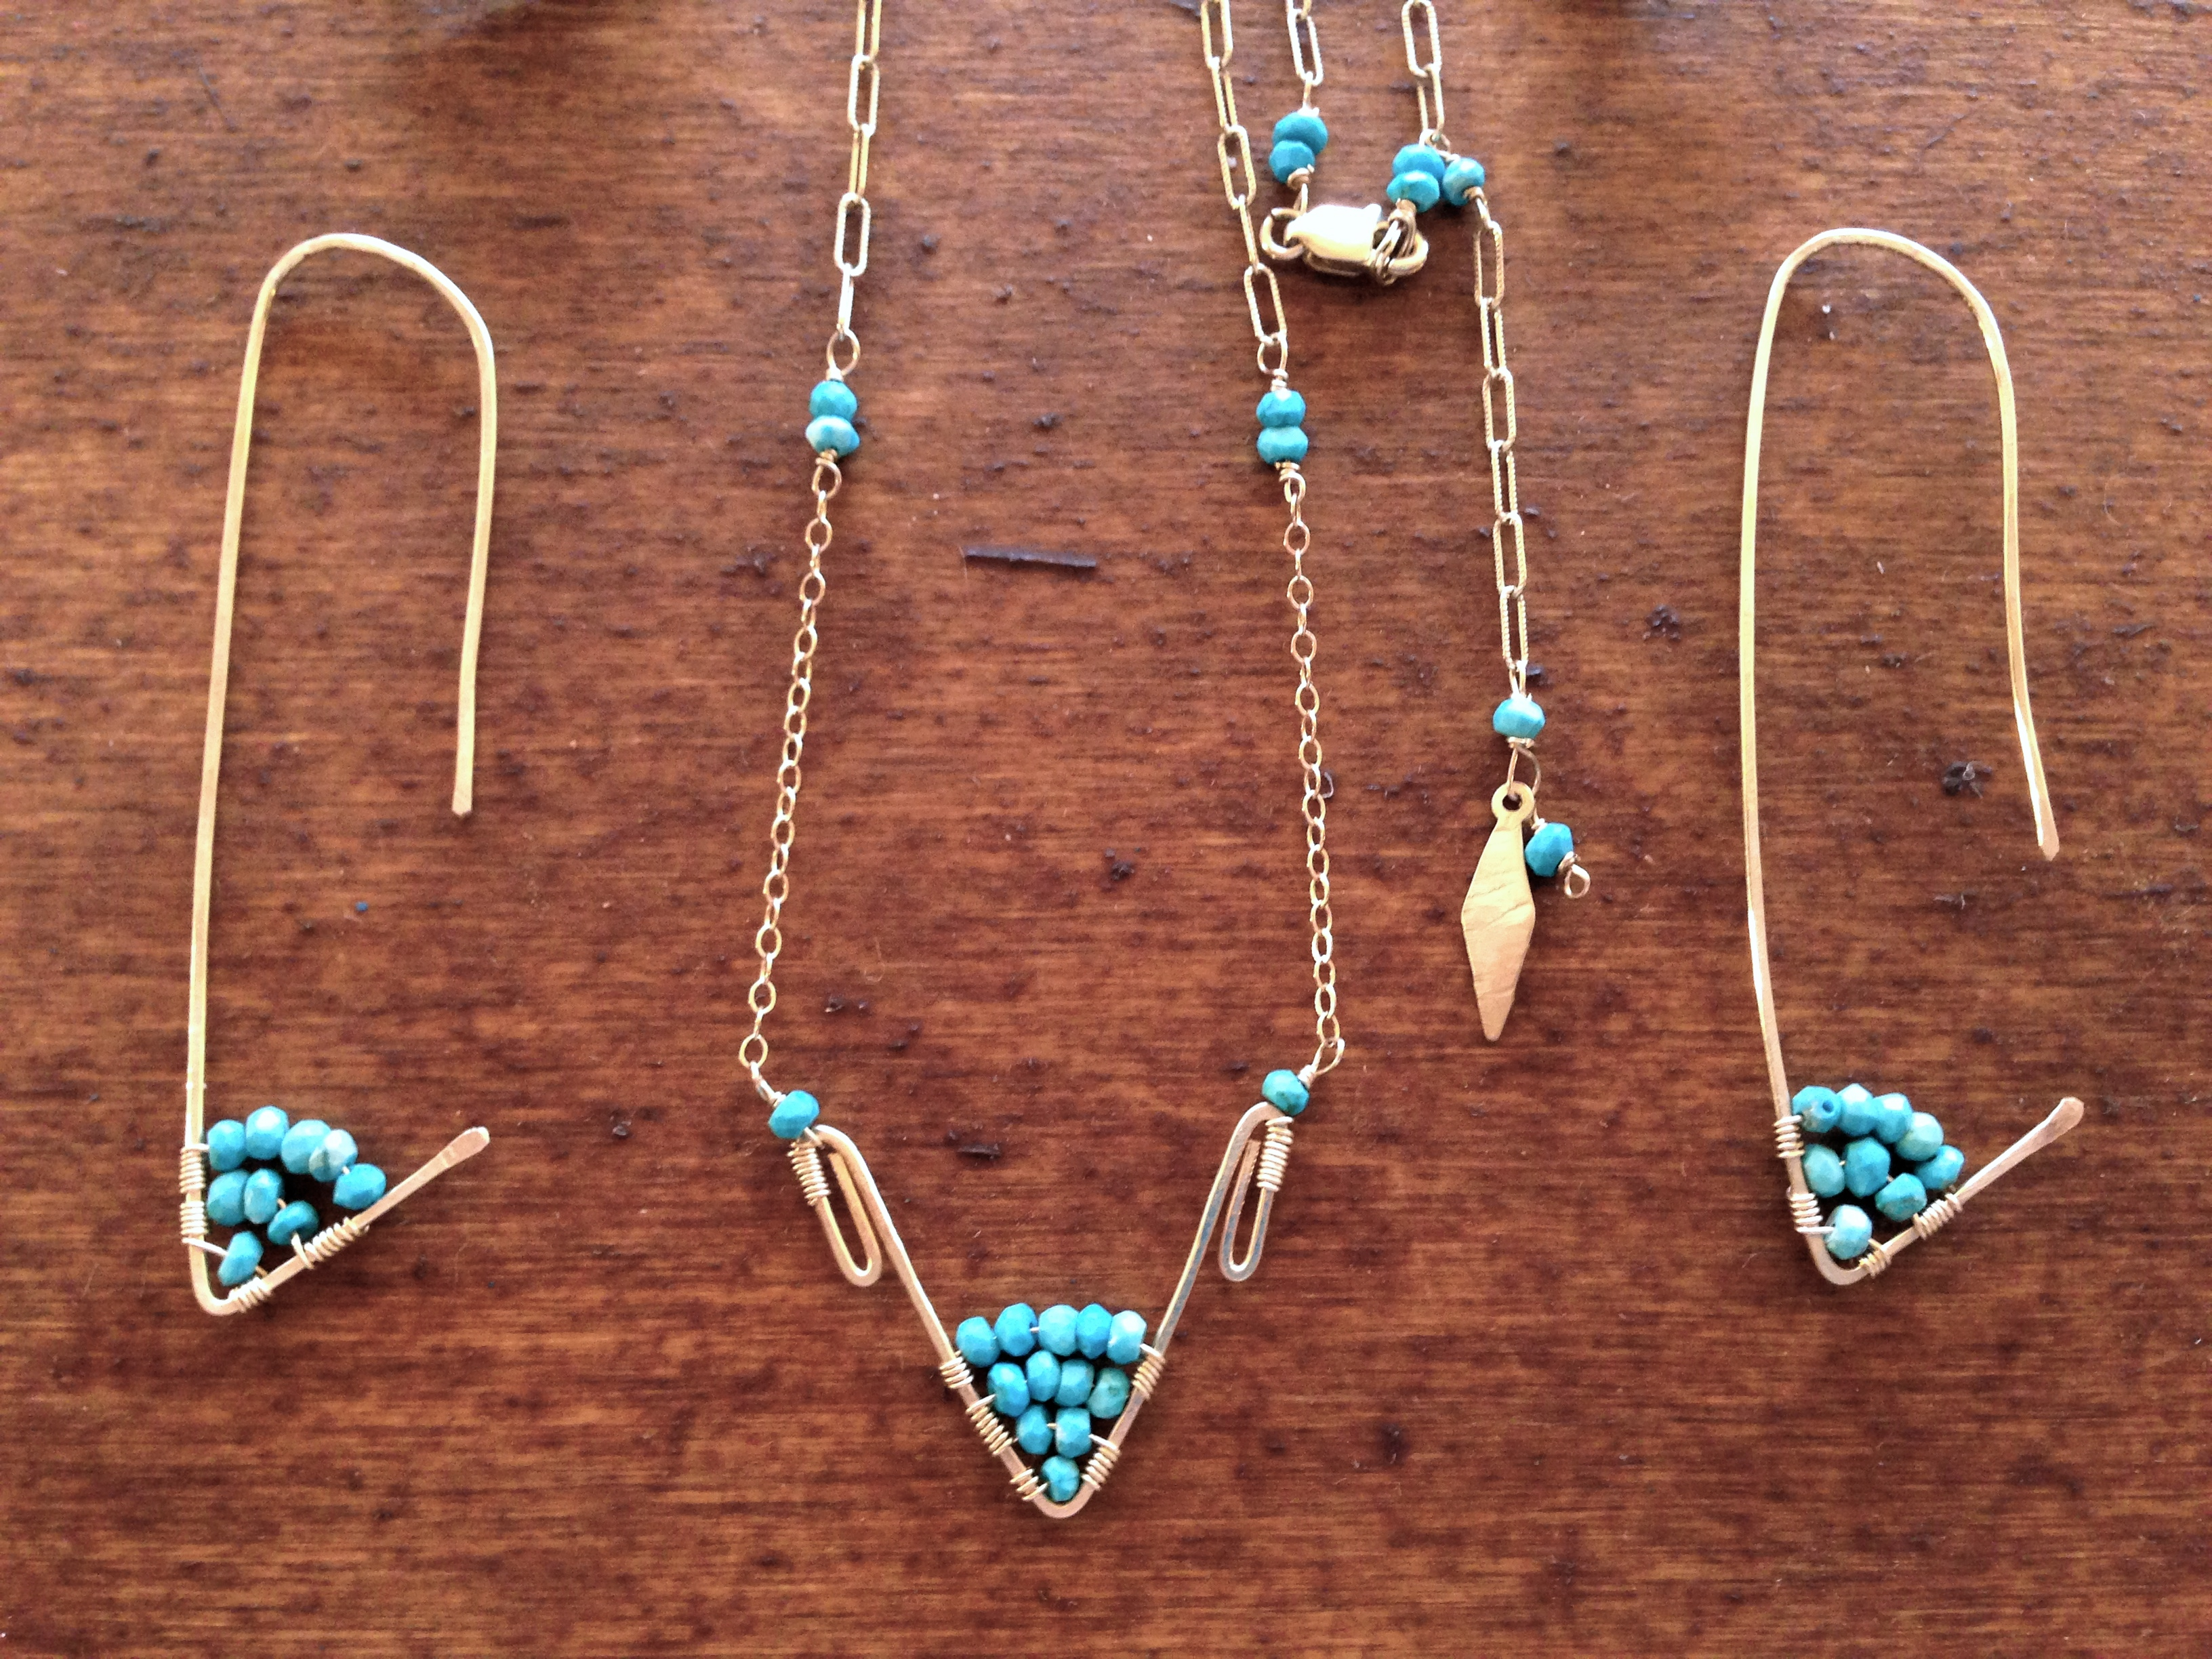 Amiti Collection in Turquoise